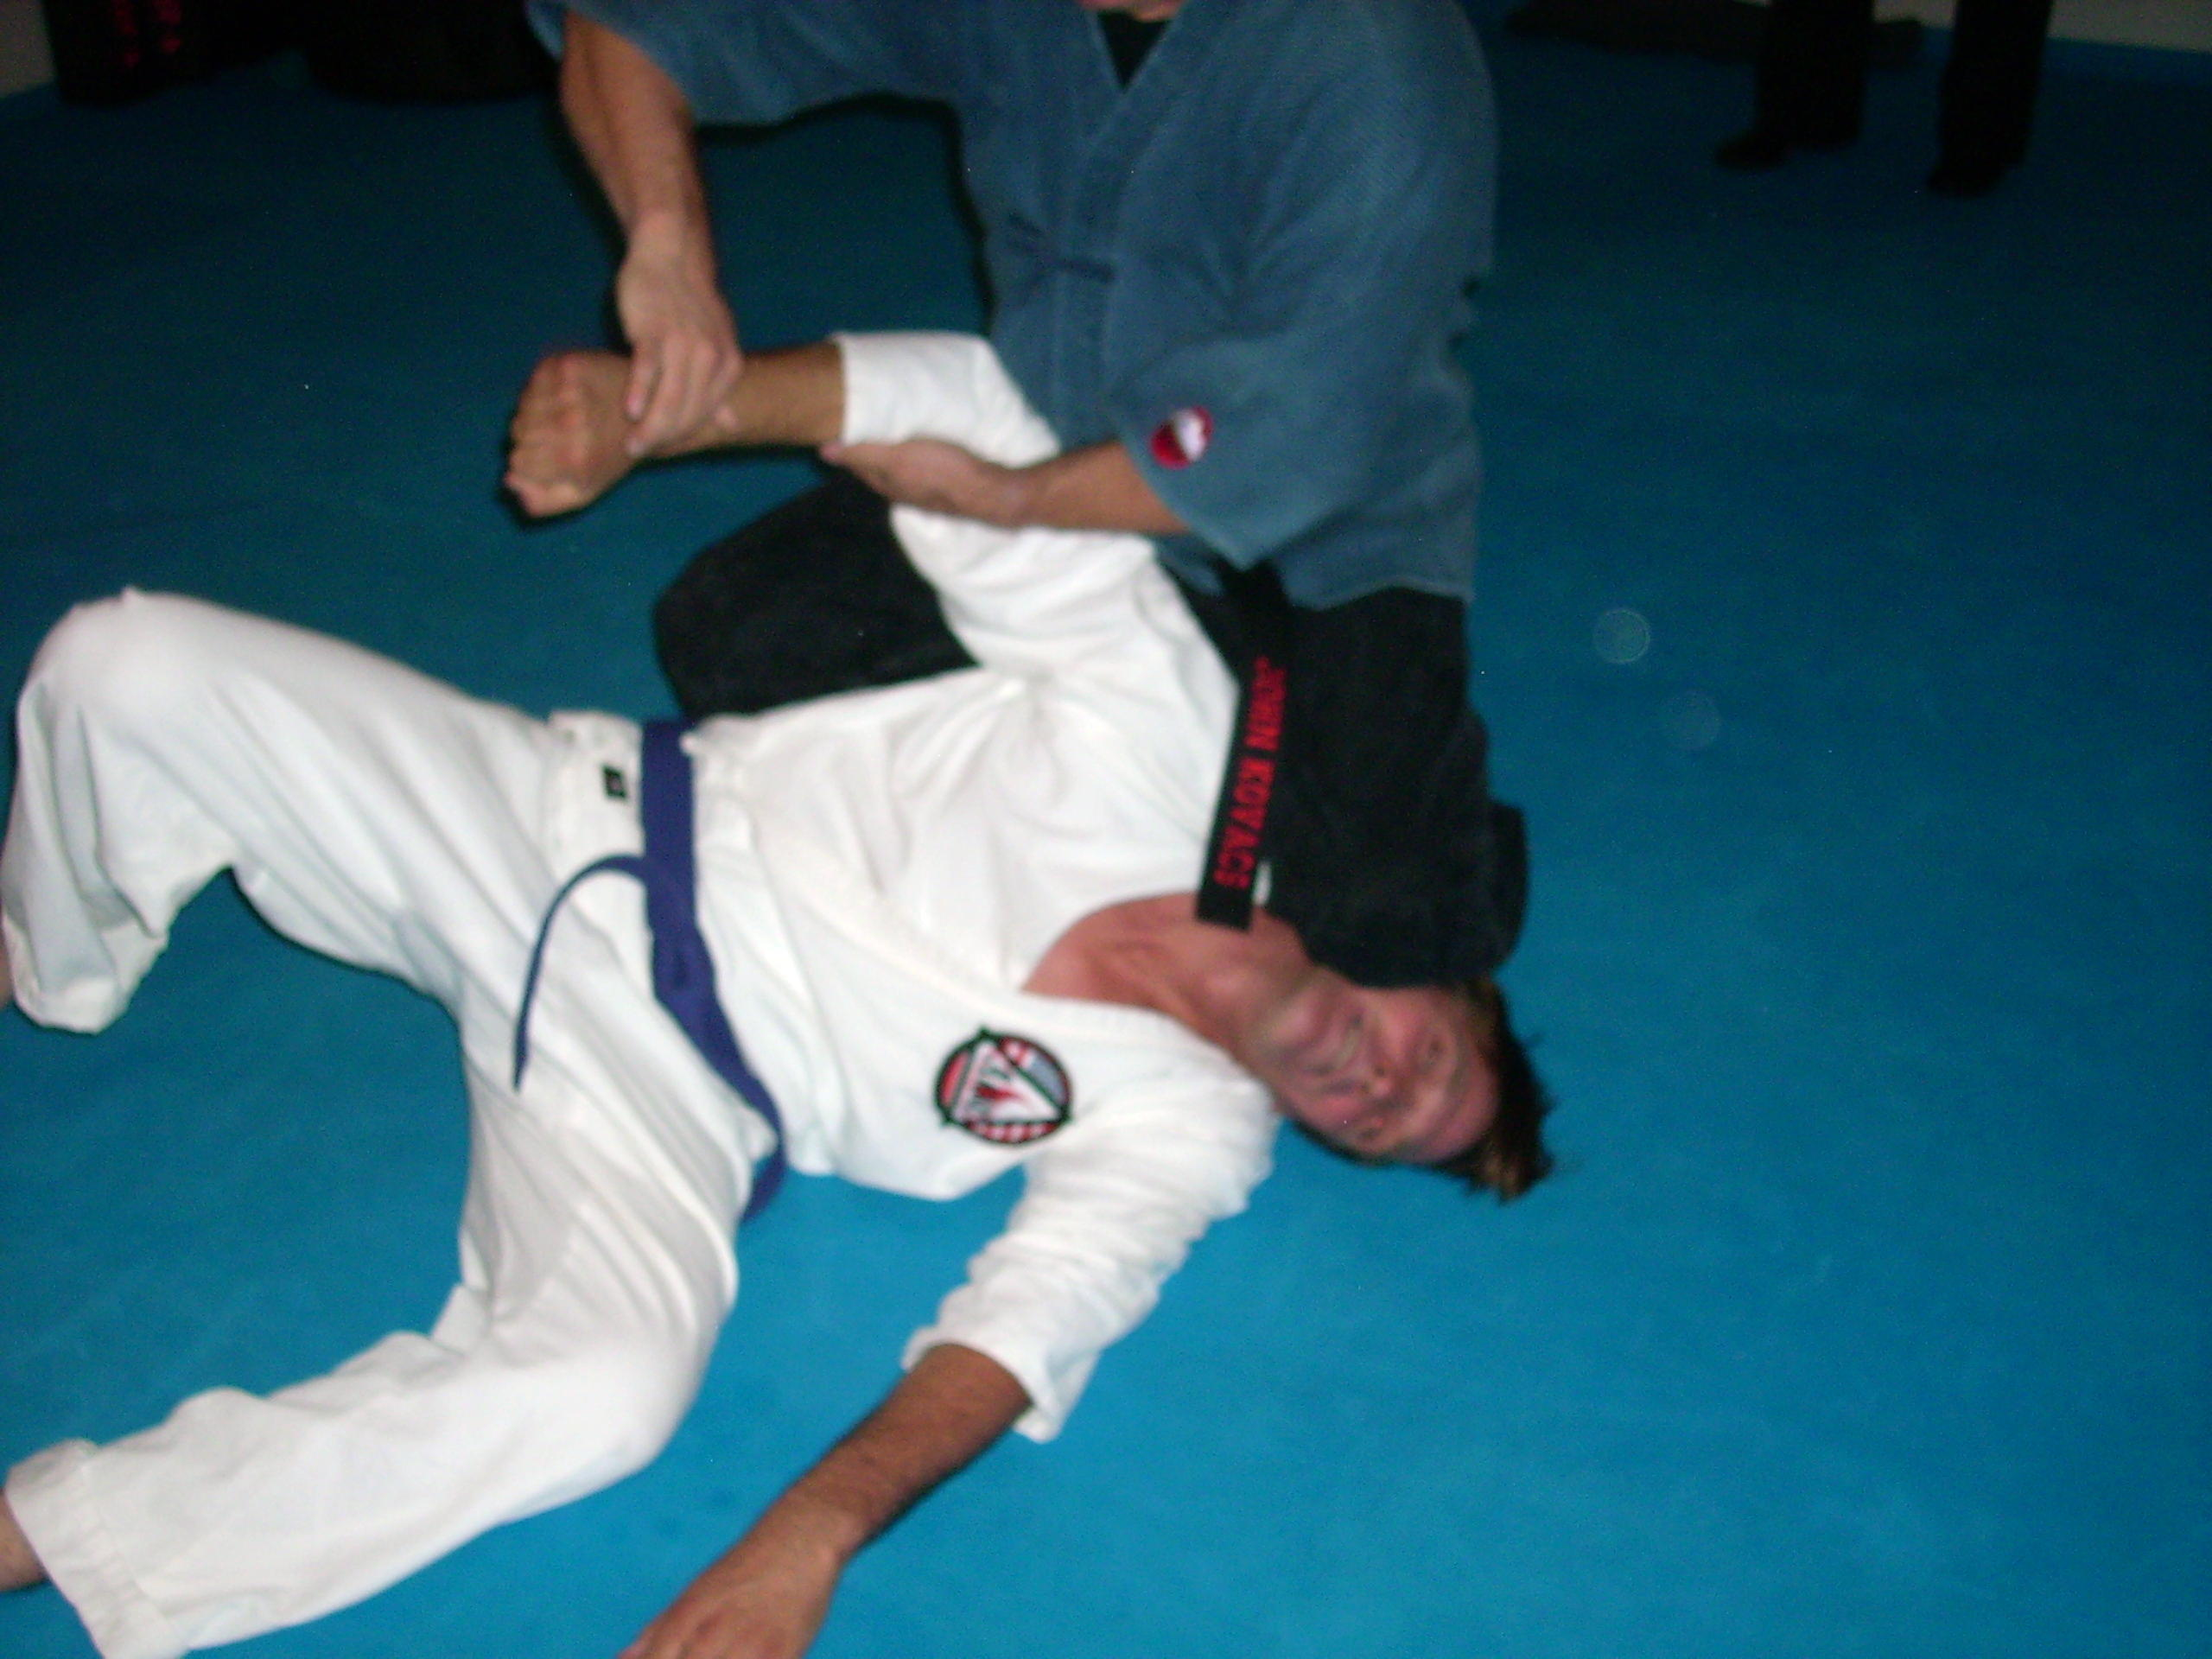 Self Defense - Branford, FL